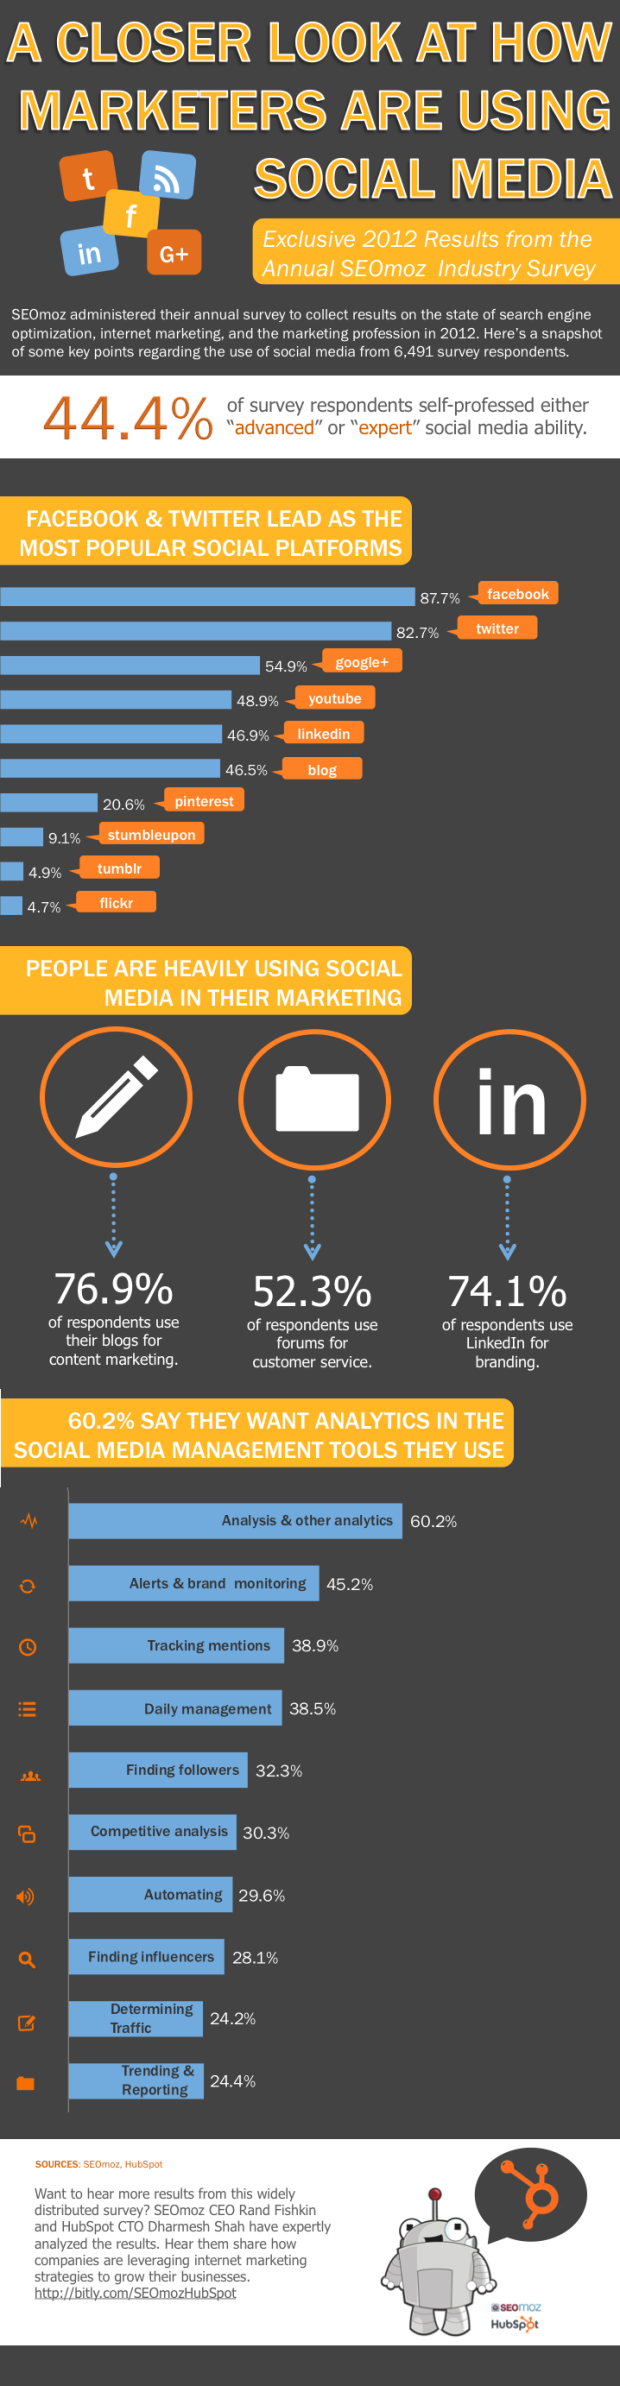 New Data Reveals How Marketers Use Social Media [INFOGRAPHIC]